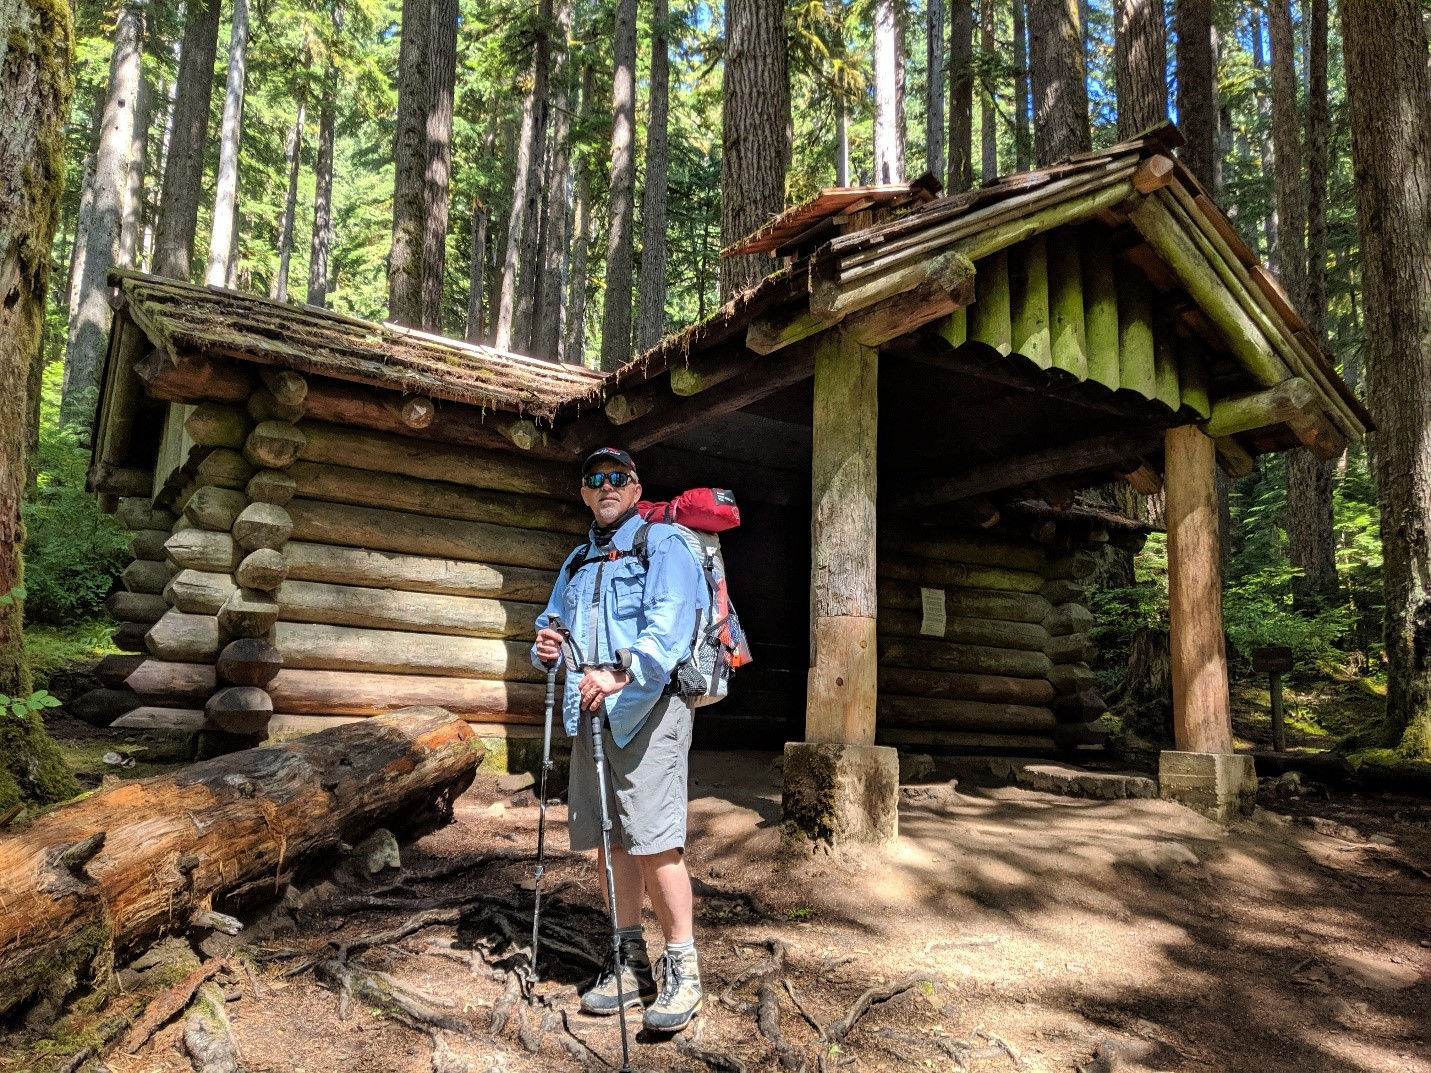 Bret Wirta standing in front of the Canyon Creek Shelter